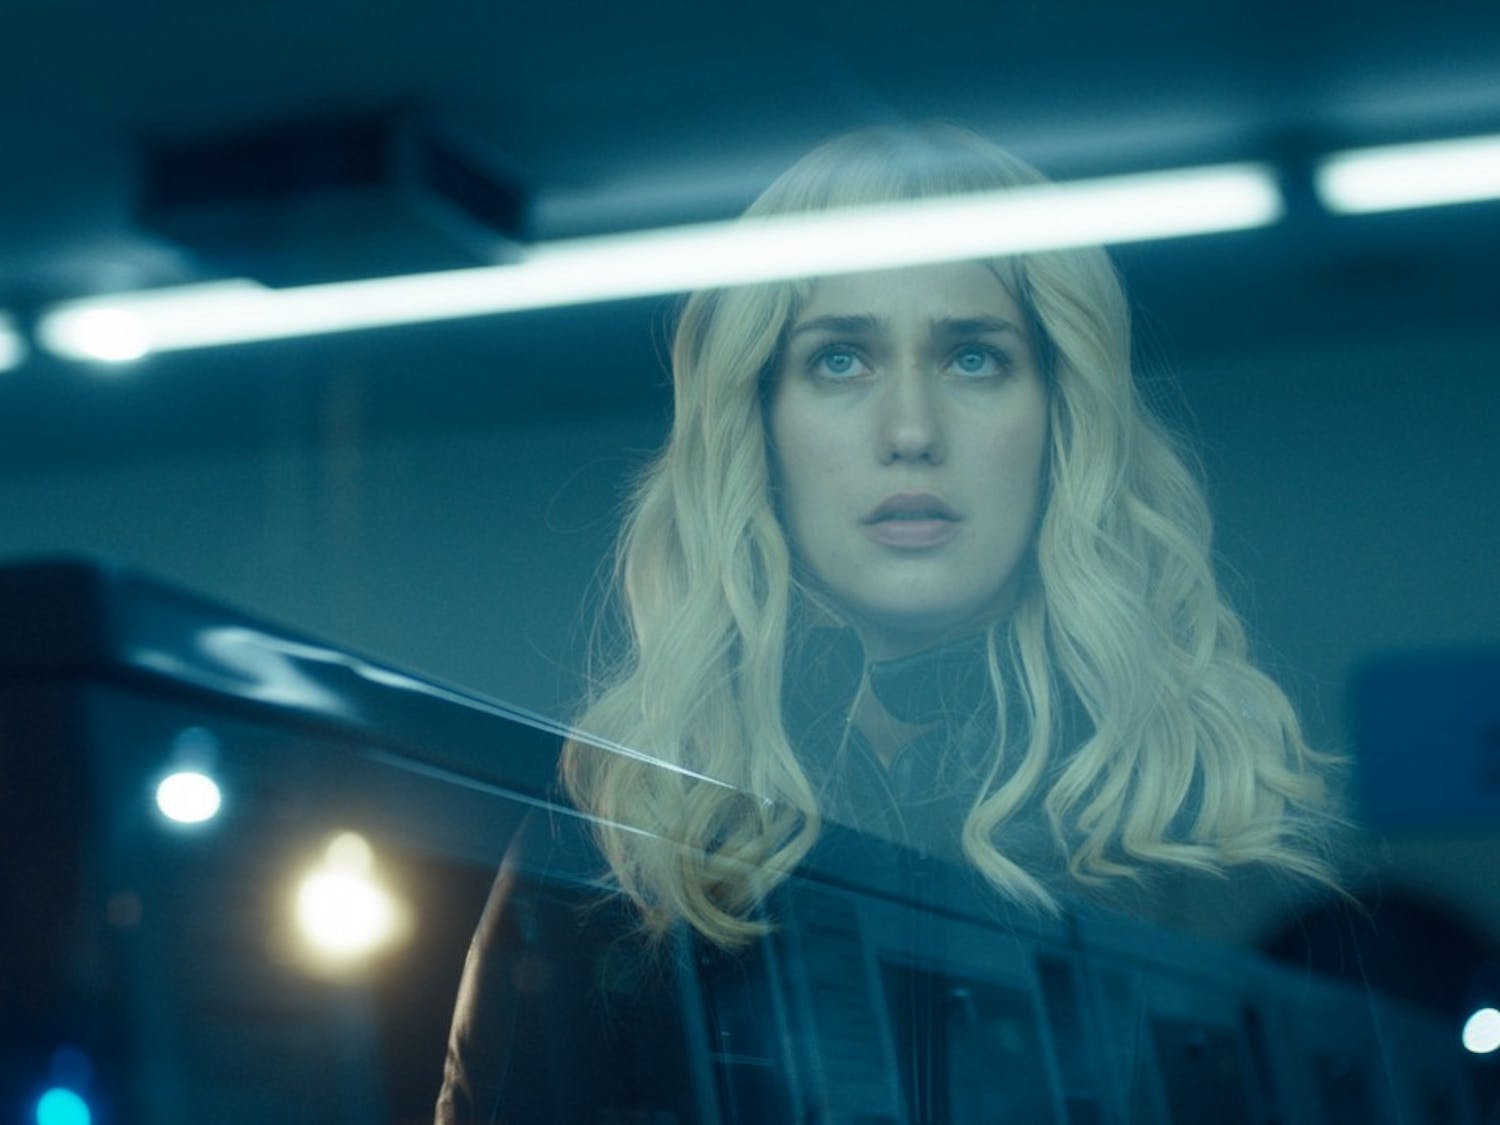 """Gemini"" has a promising opening scene, but then delves into issues with plot and tone."